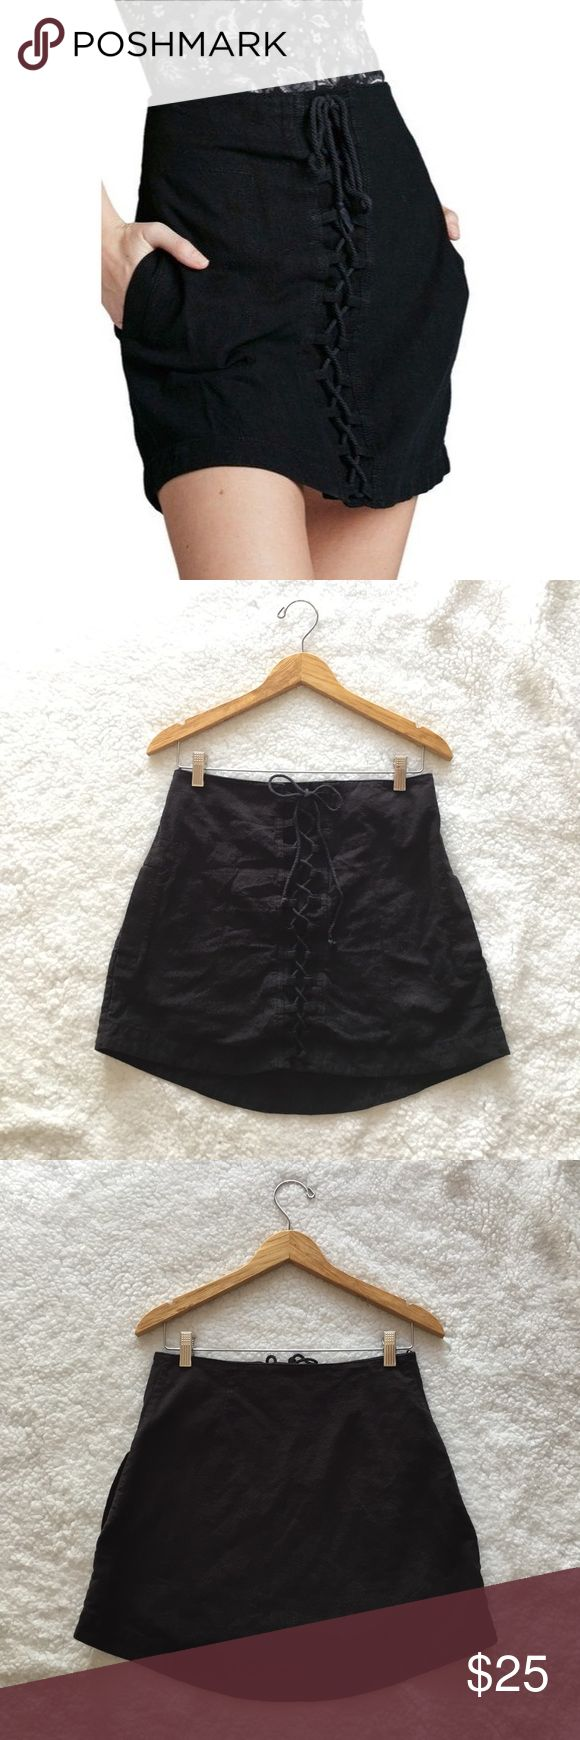 """Free People Walk My Way lace up mini skirt I do NOT model or trade. Please do not ask. -RTP $88, sold out. -Size Small, fits 1/2 larger. -Short-and-sweet mini skirt loaded with look-at-me edge thanks to alluring lace-up detail and a thigh-grazing silhouette. Fully lined. Two hidden side pockets. Secure hidden button closure. -Only flaw is light piling. -55% linen, 45% cotton.   •waist (lying flat): 14.5"""" •length: ~15.5"""" Free People Skirts Mini"""